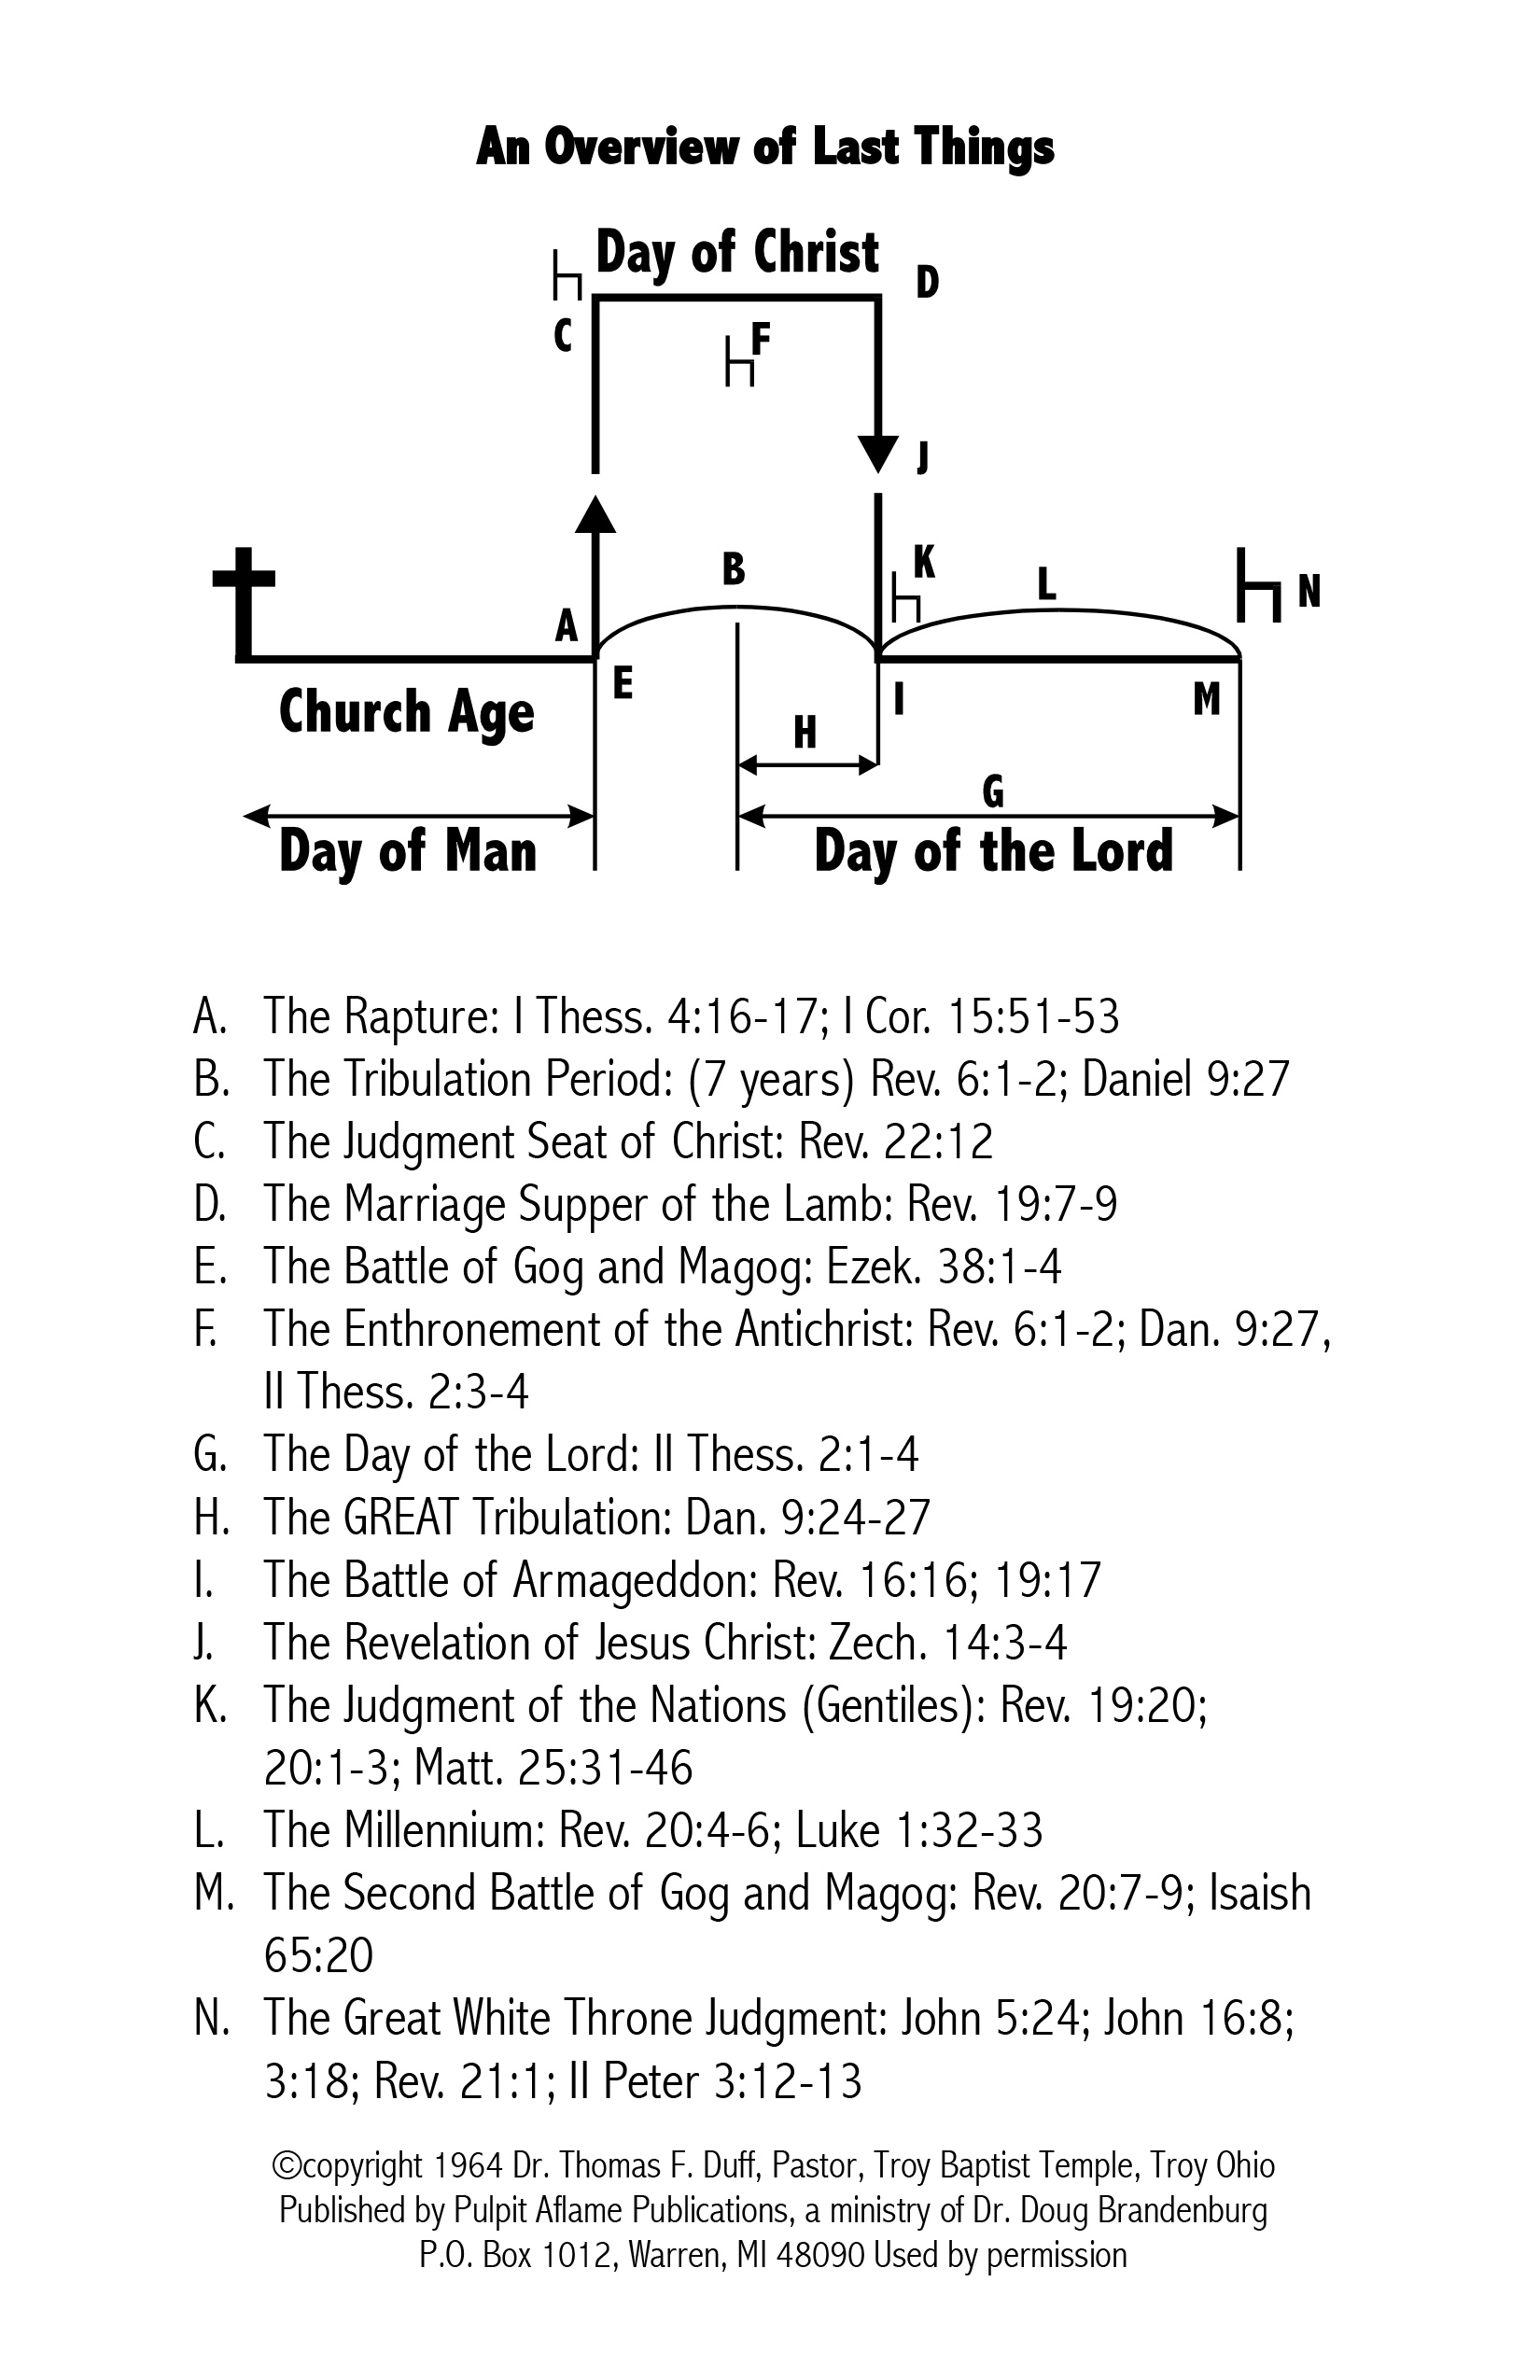 """The famous """"Hat Diagram"""" used by Dr. Thomas F. Duff to teach prophecy, especially the Second Coming of Christ"""